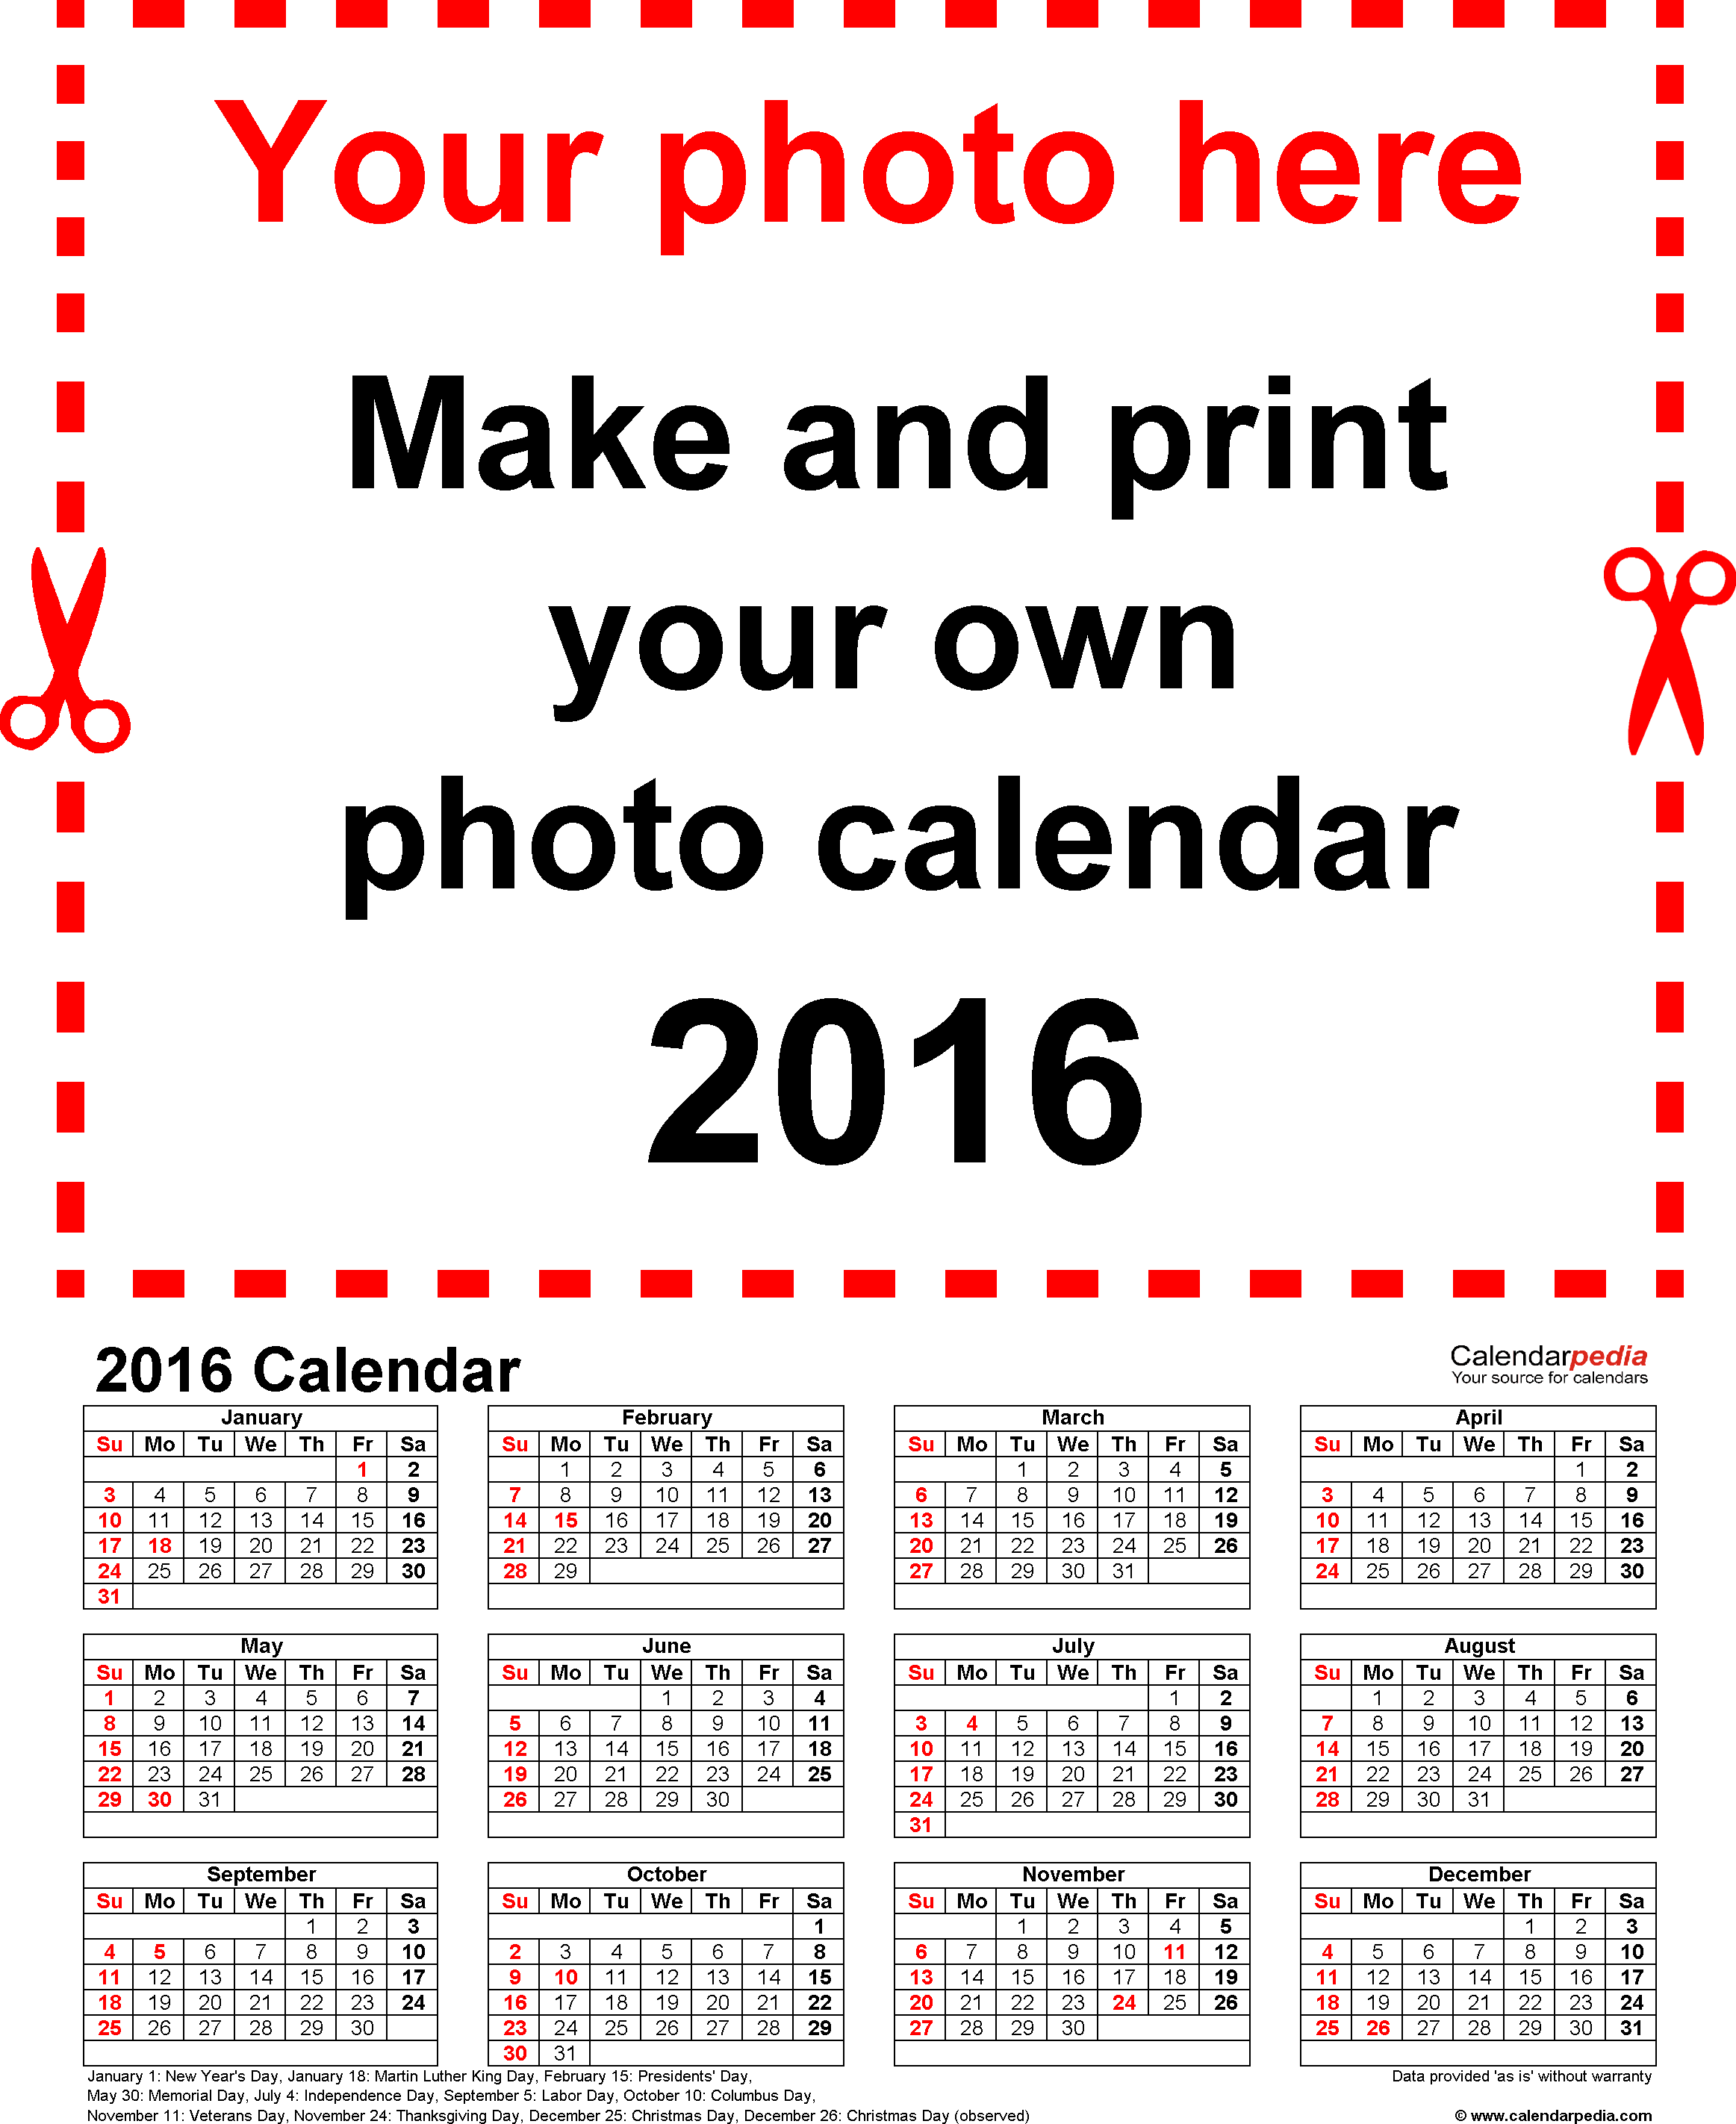 ... Photo calendar 2016 for Word, portrait format, whole year on one page